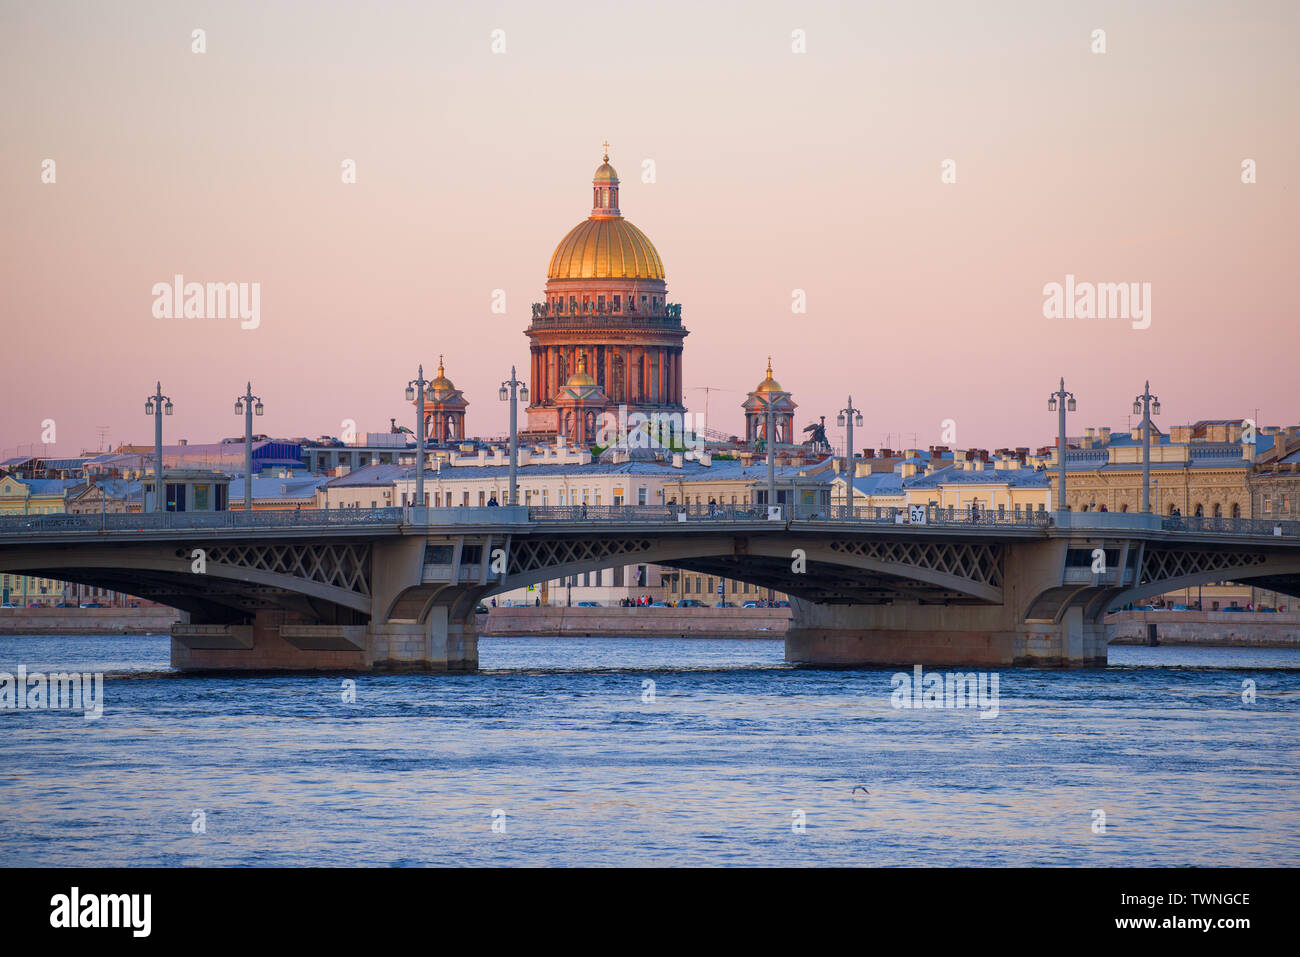 Dome of St. Isaac's Cathedral over  Annunciation Bridge in May twilight. St. Petersburg, Russia - Stock Image